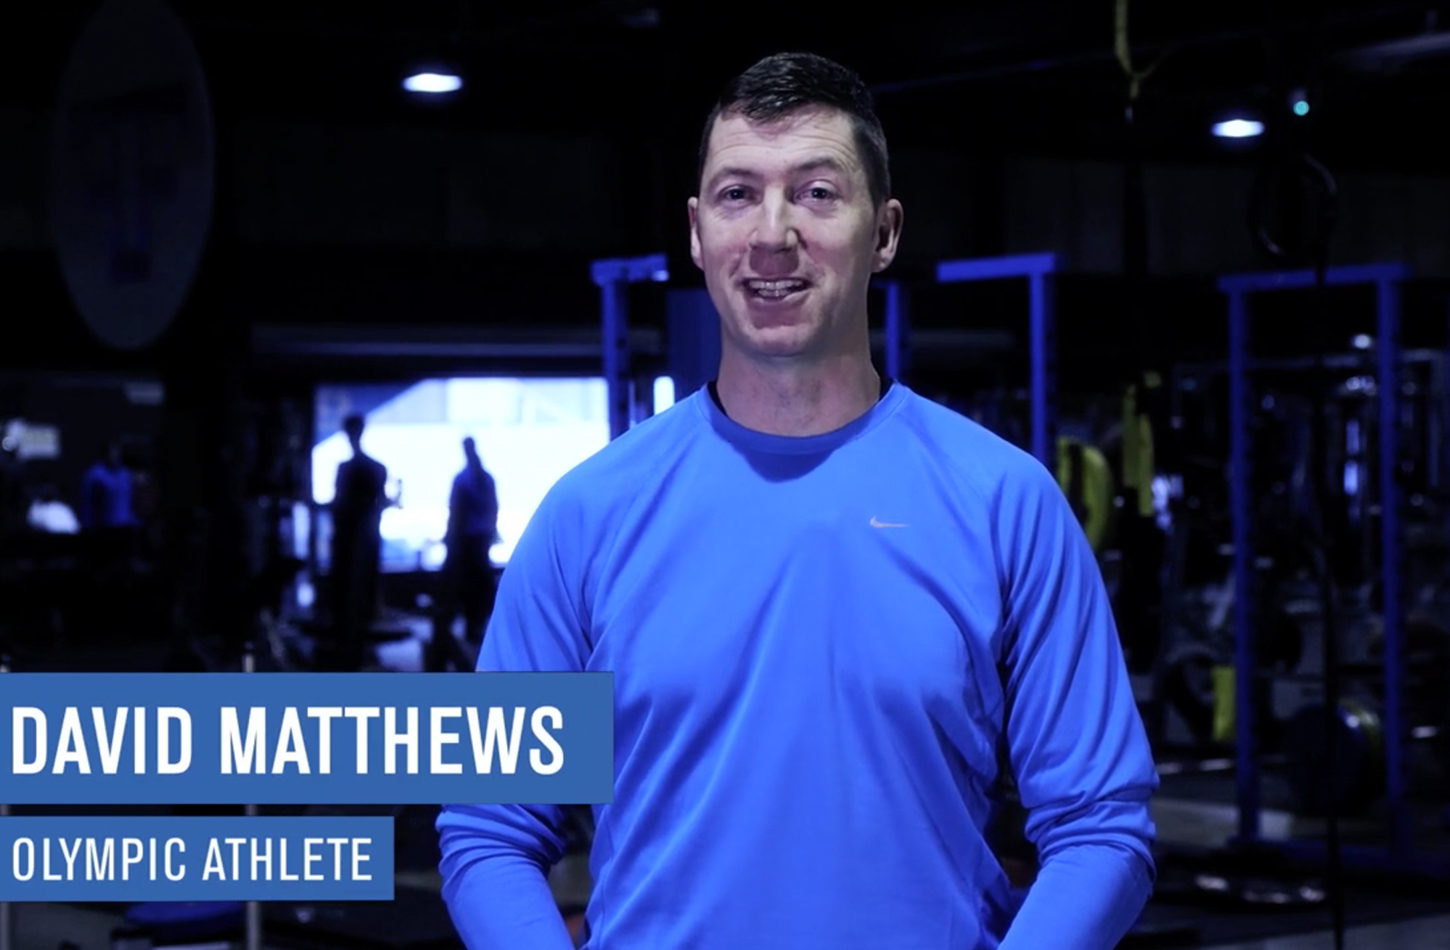 RUNNING 101: HOW TO STEP IT UP WITH DAVID MATTHEWS